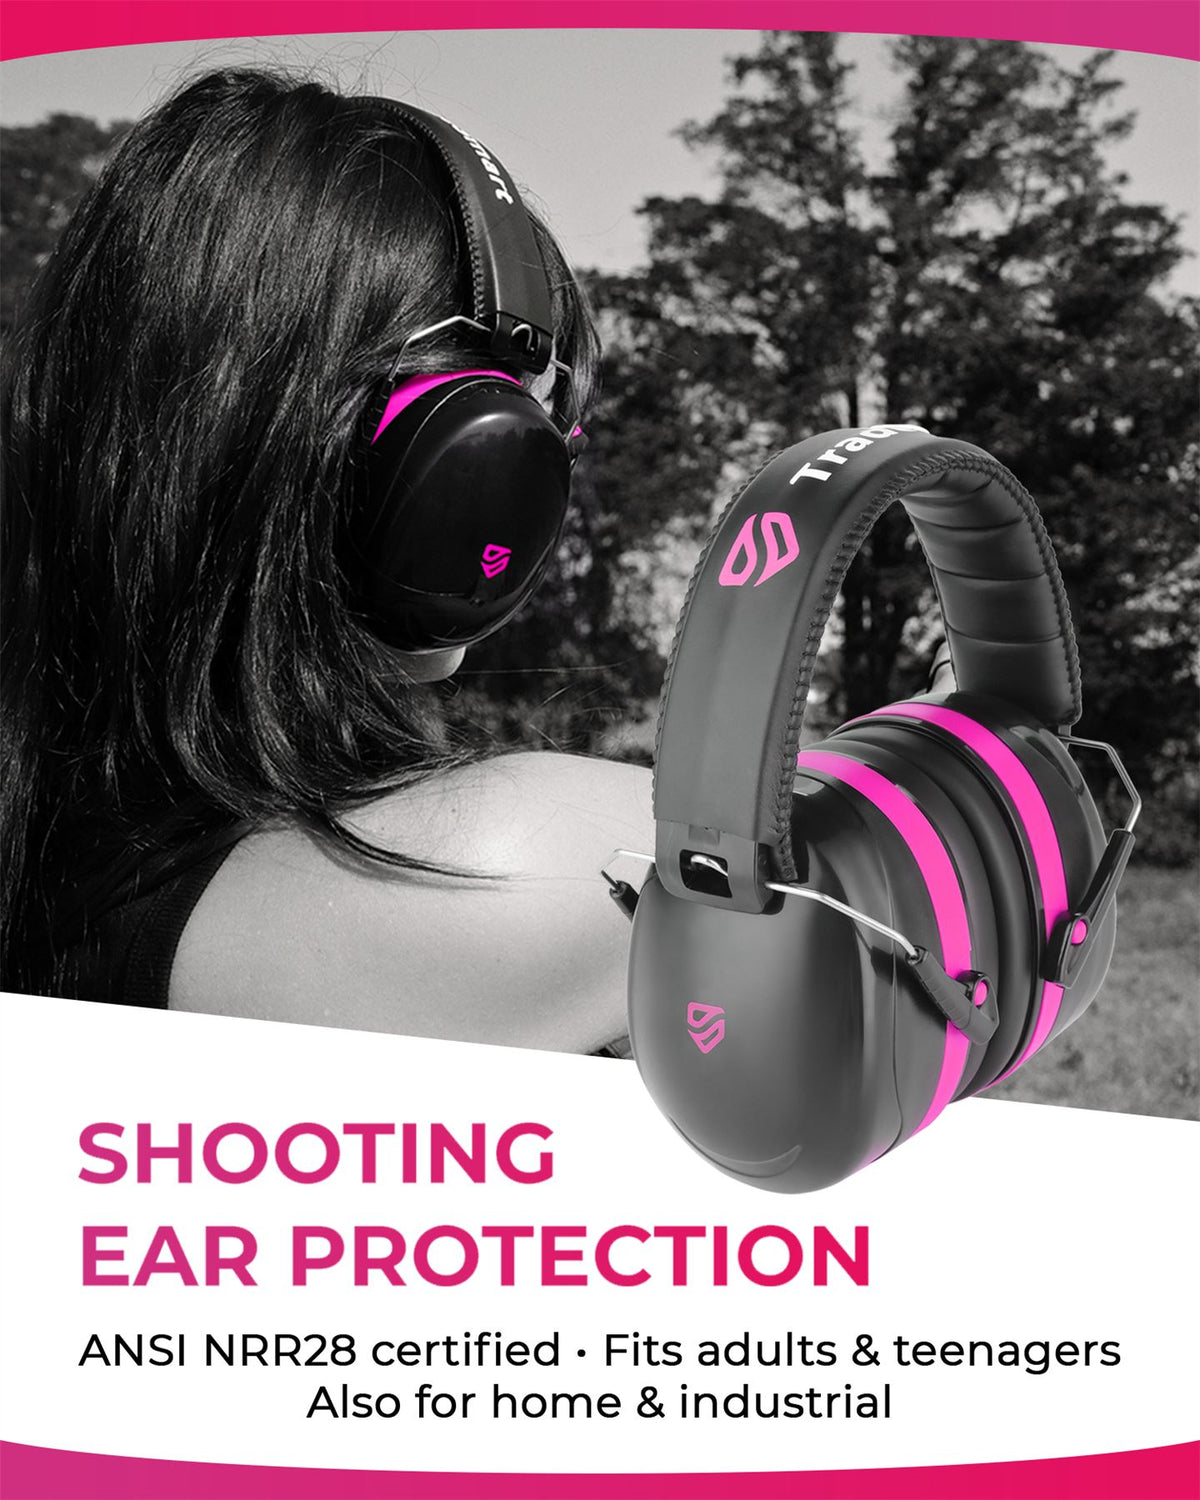 PROFESSIONAL - Earmuffs, Indoor Clear Safety Glasses, Protective Case & Earplugs